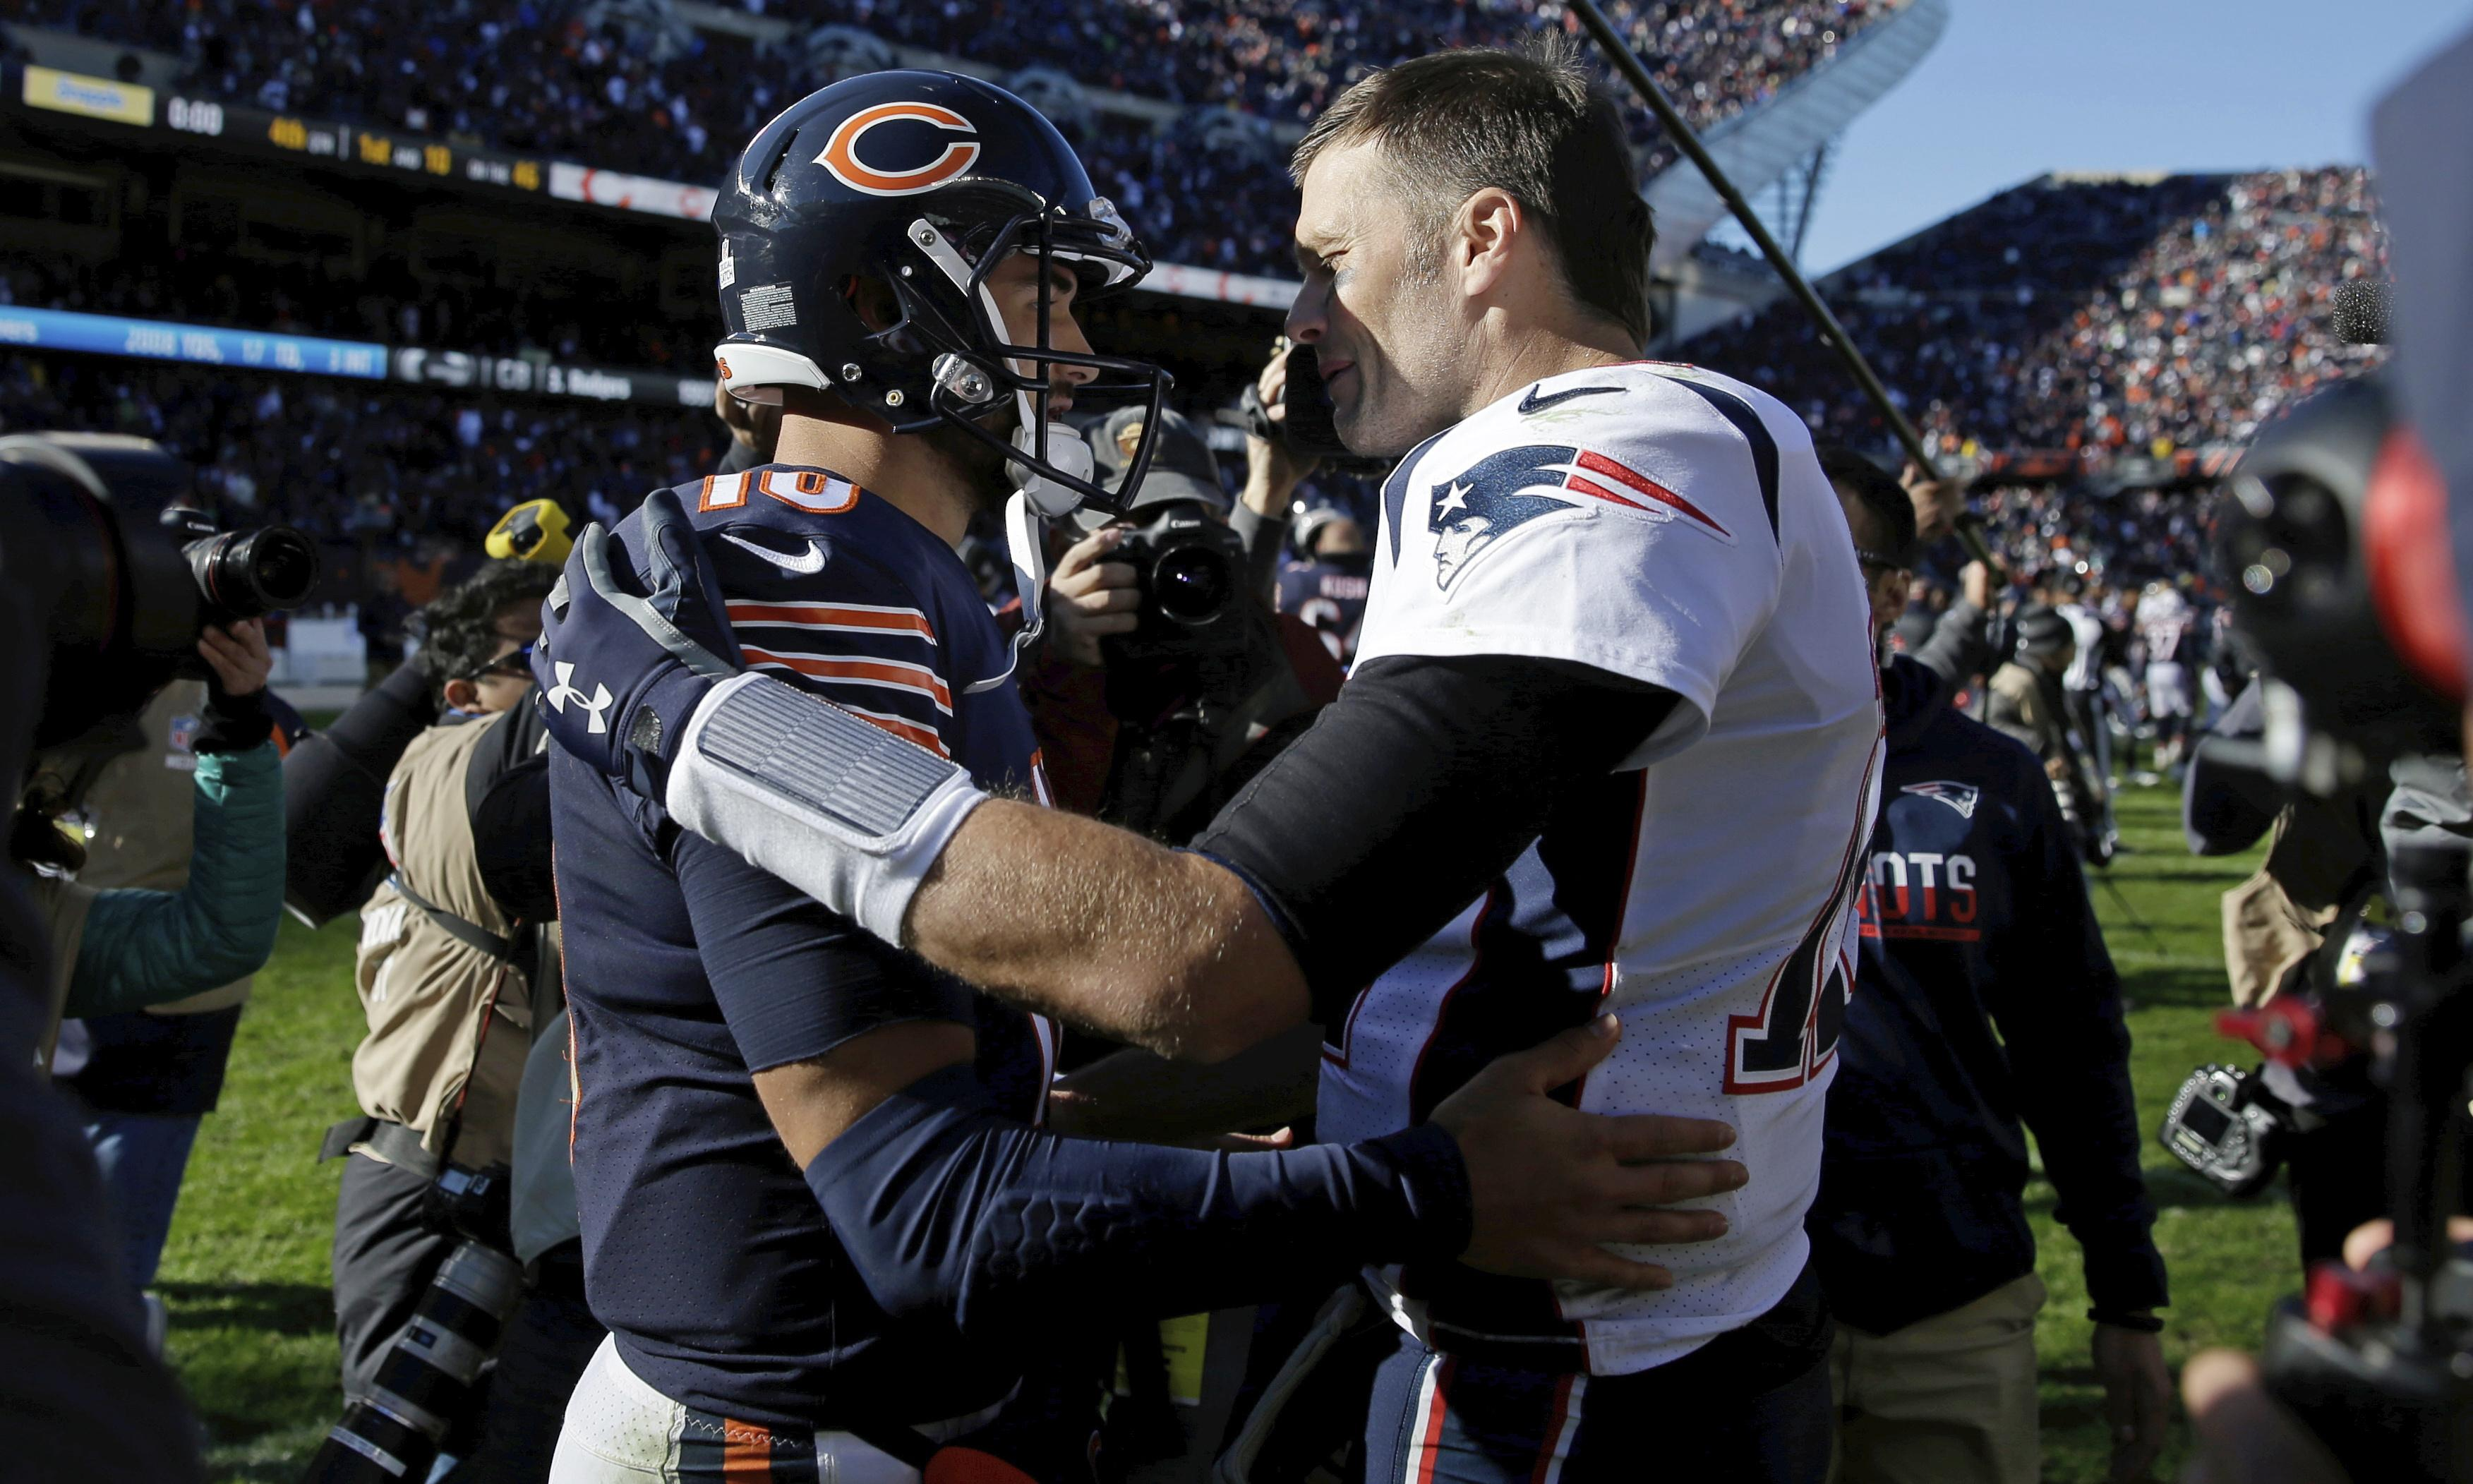 NFL wrap: Bears lose heartbreaker to Pats as Hail Mary comes up just short